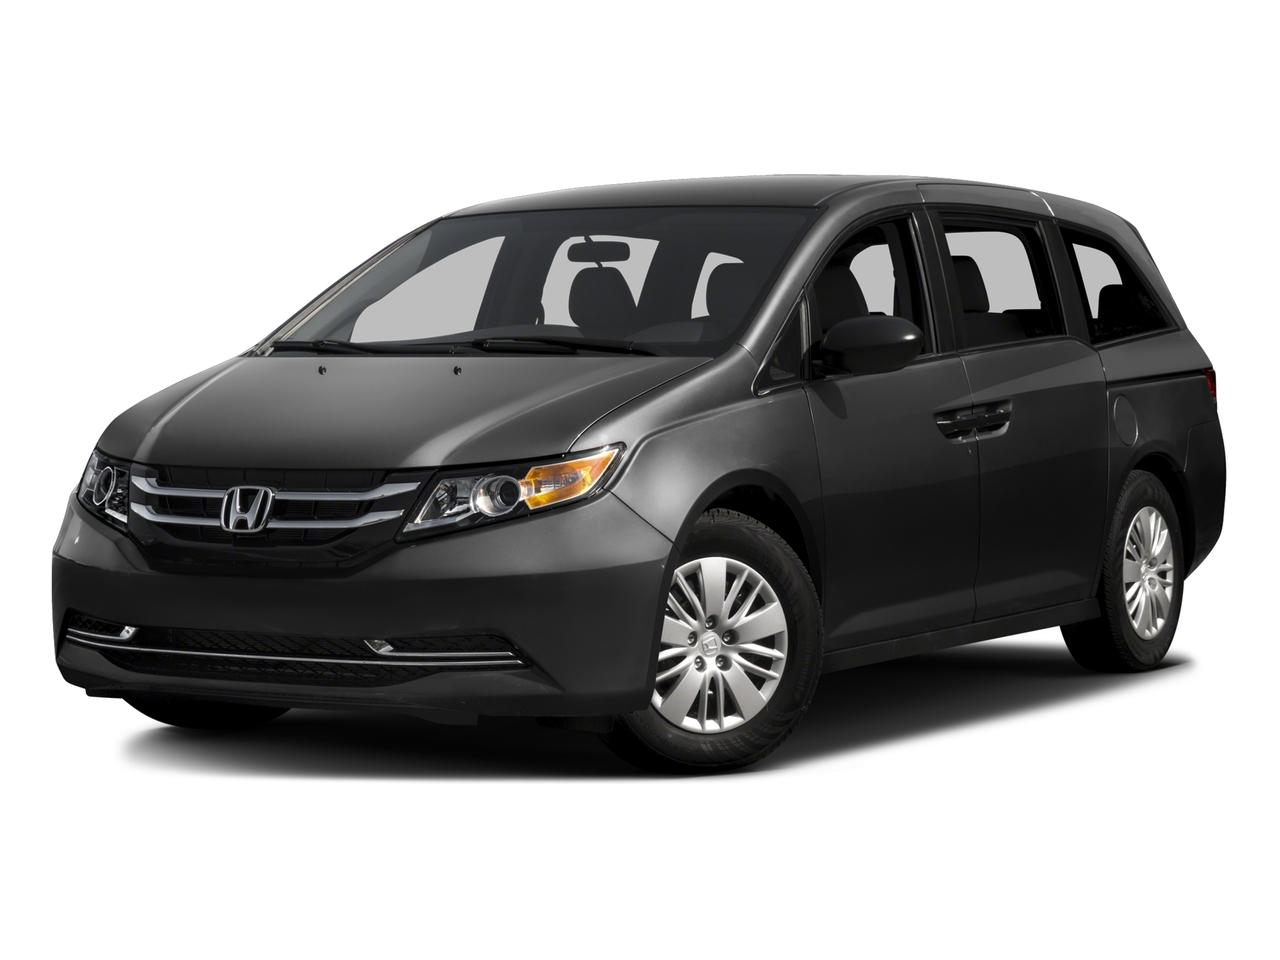 2016 Honda Odyssey Vehicle Photo in Warren, OH 44483